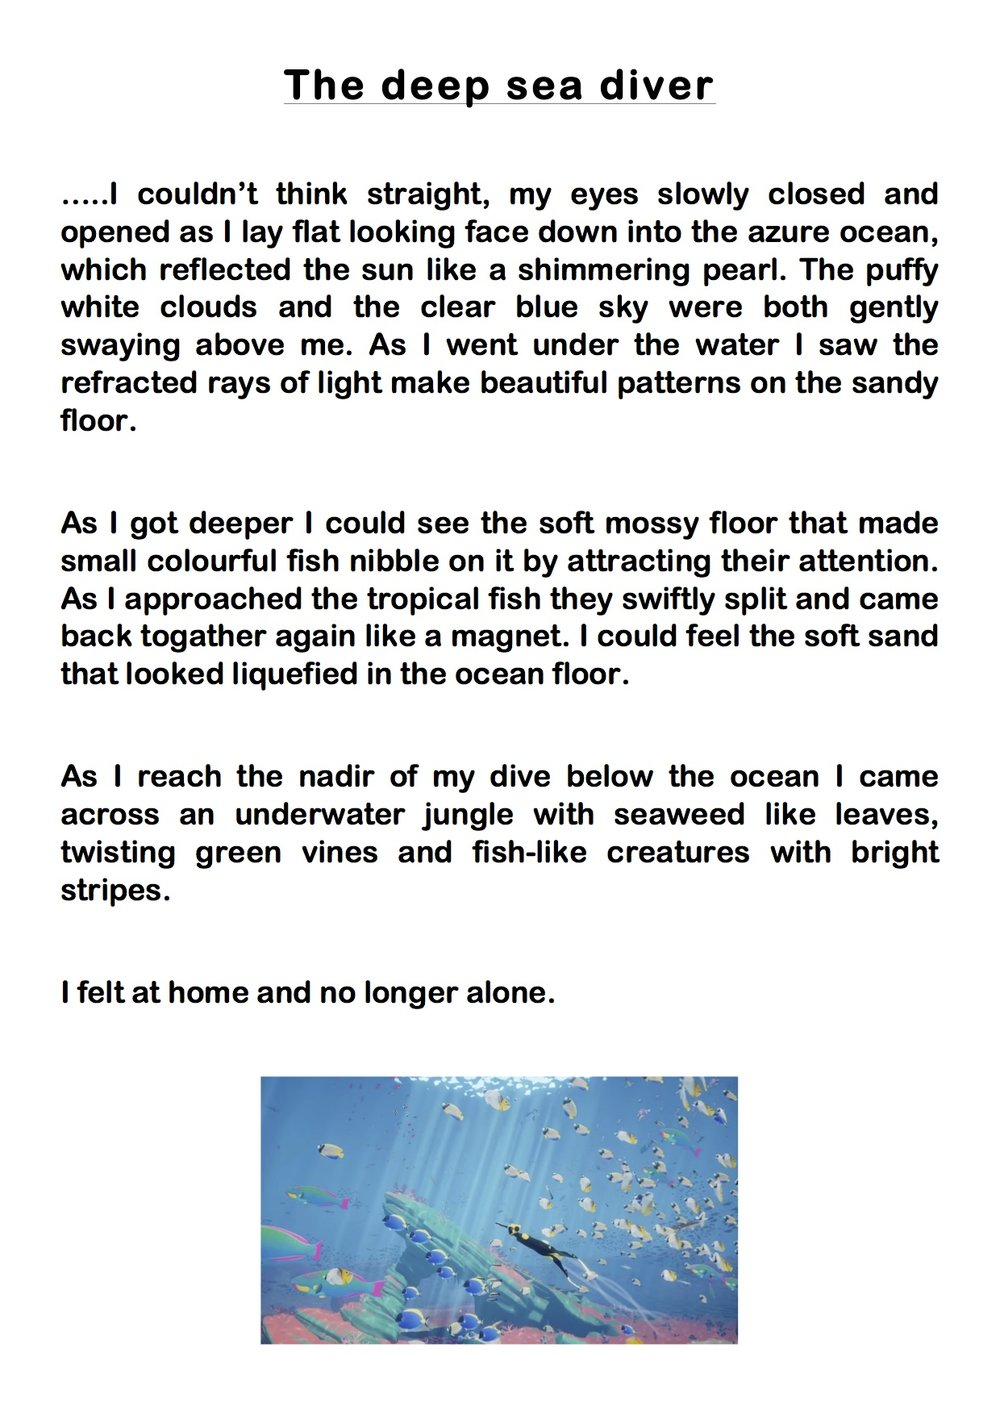 Descriptive essay about the ocean